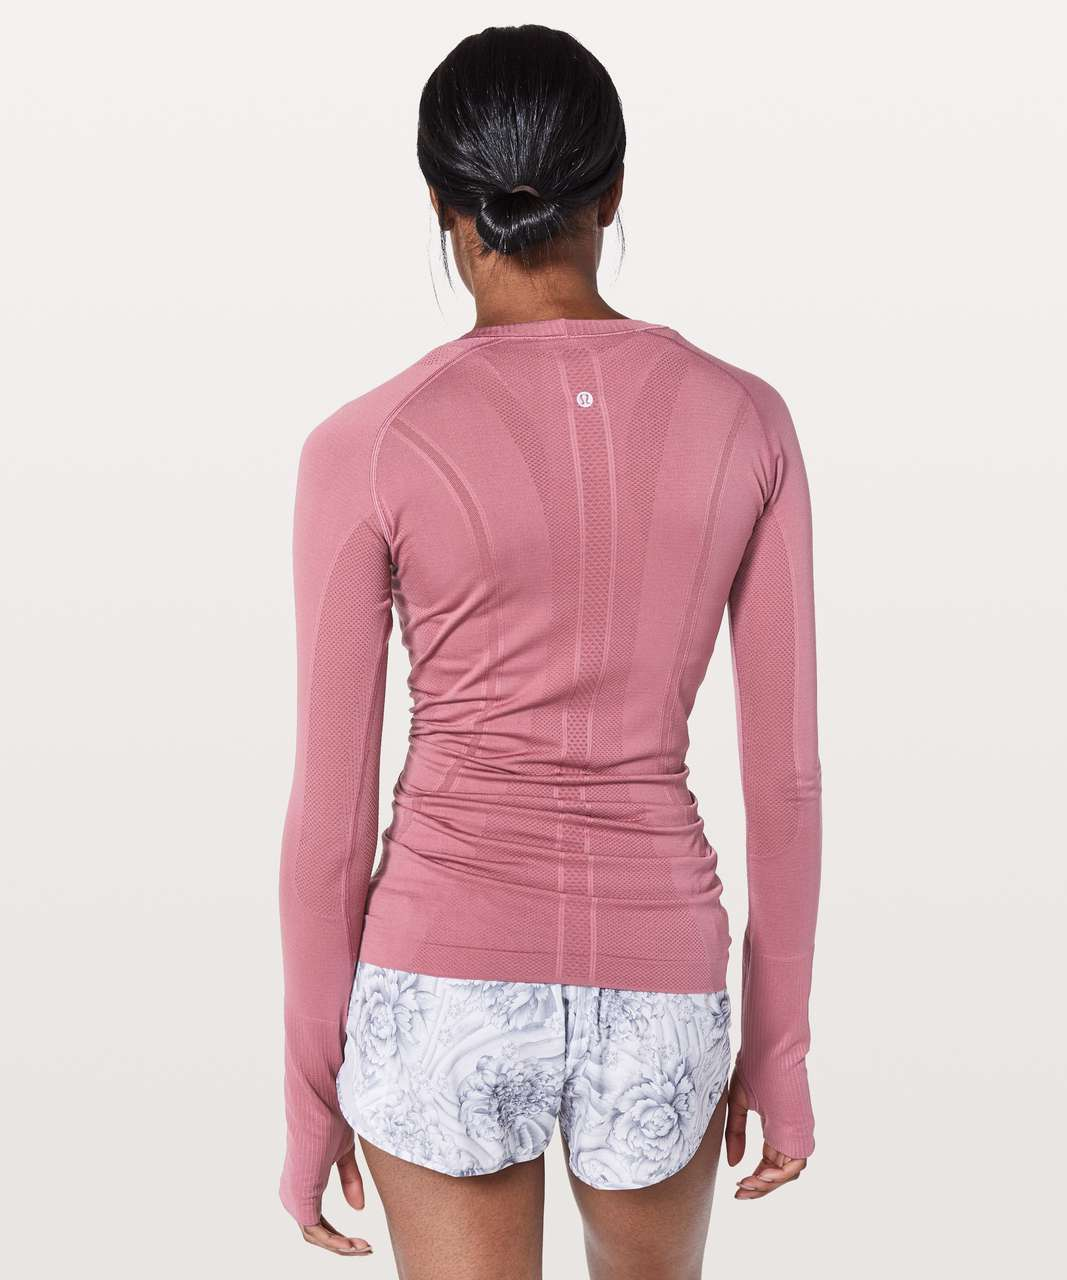 Lululemon Swiftly Tech Long Sleeve Crew - Moss Rose / Moss Rose